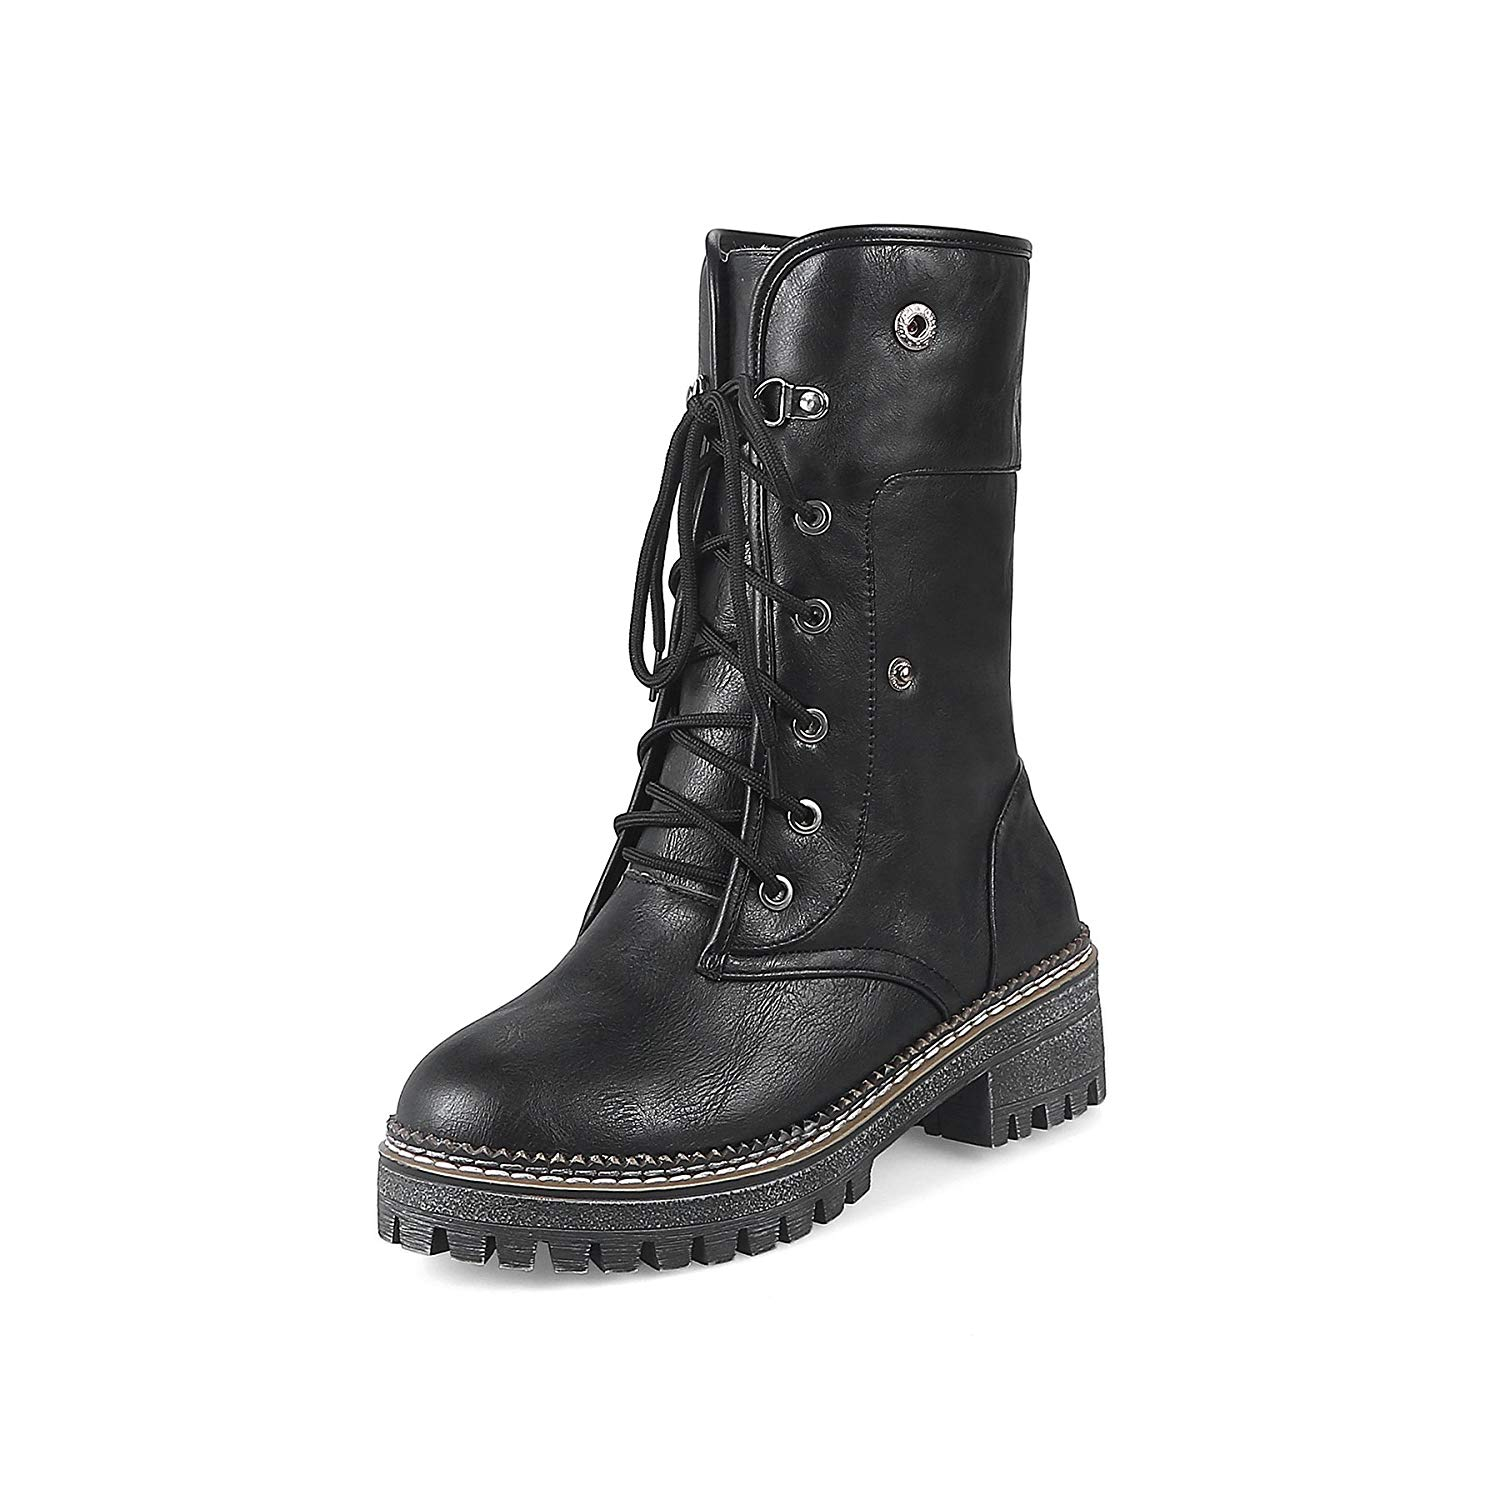 247ae83d95341 Get Quotations · CHENSIR9 Women Winter Martin Boots Female Leather Combat  Boots Woman Mid-Calf Warm Ladies Shoes